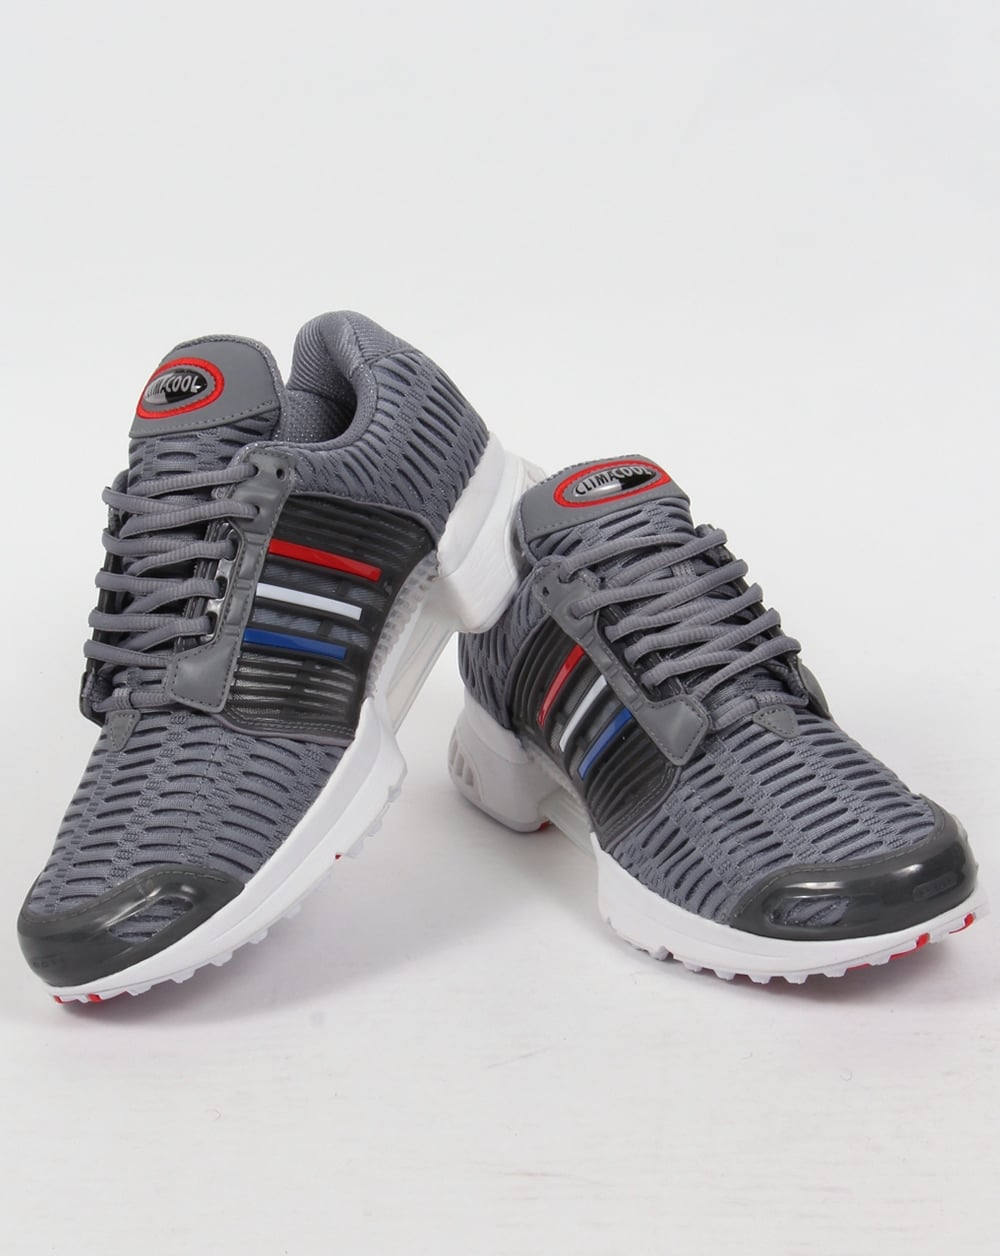 adidas climacool trainers red